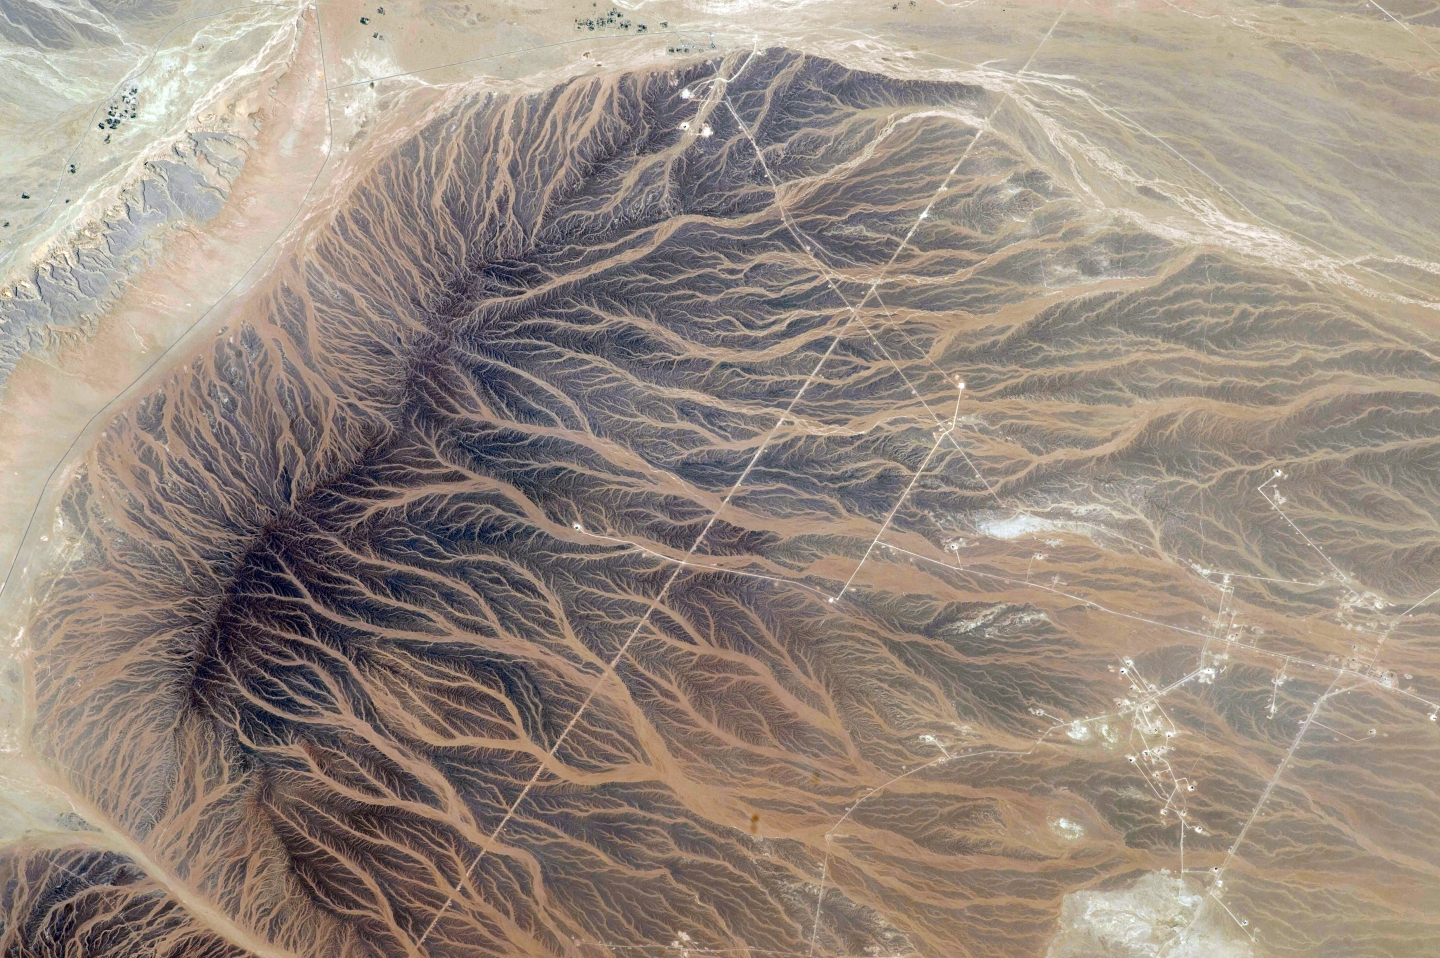 Tan'am, Oman NASA image